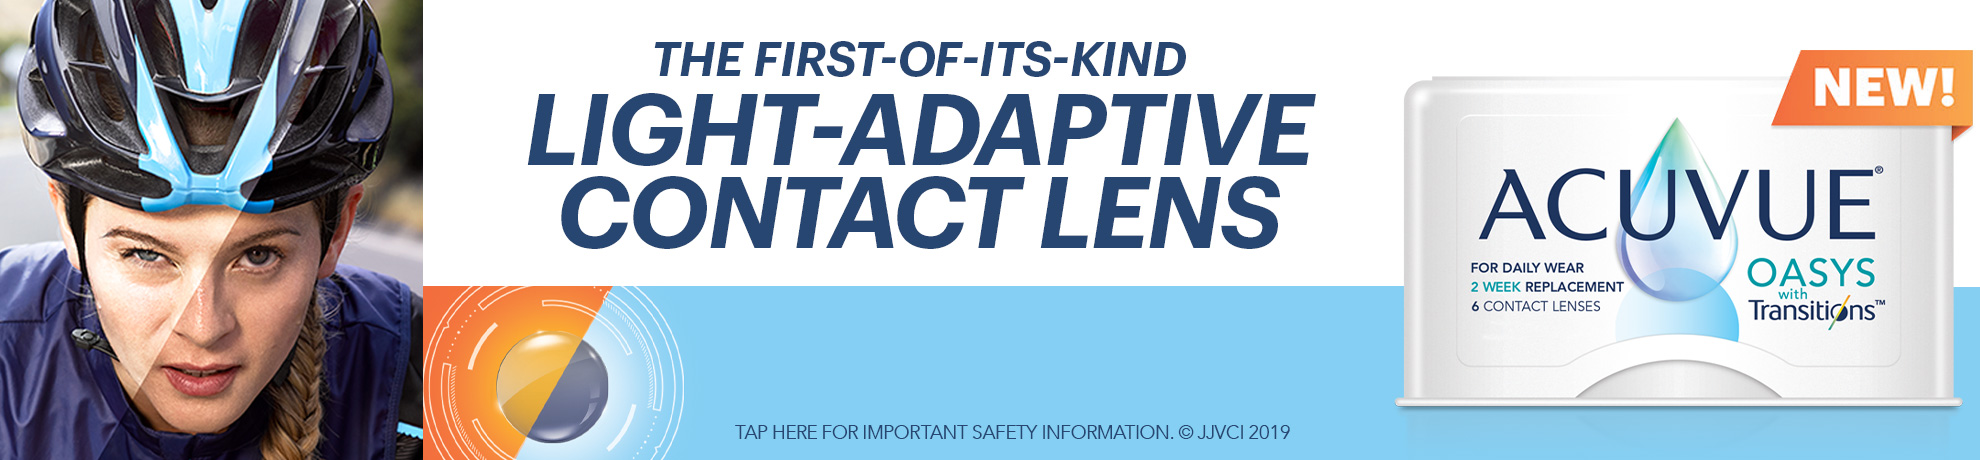 Acuvue Light-Adaptive Contact Lenses